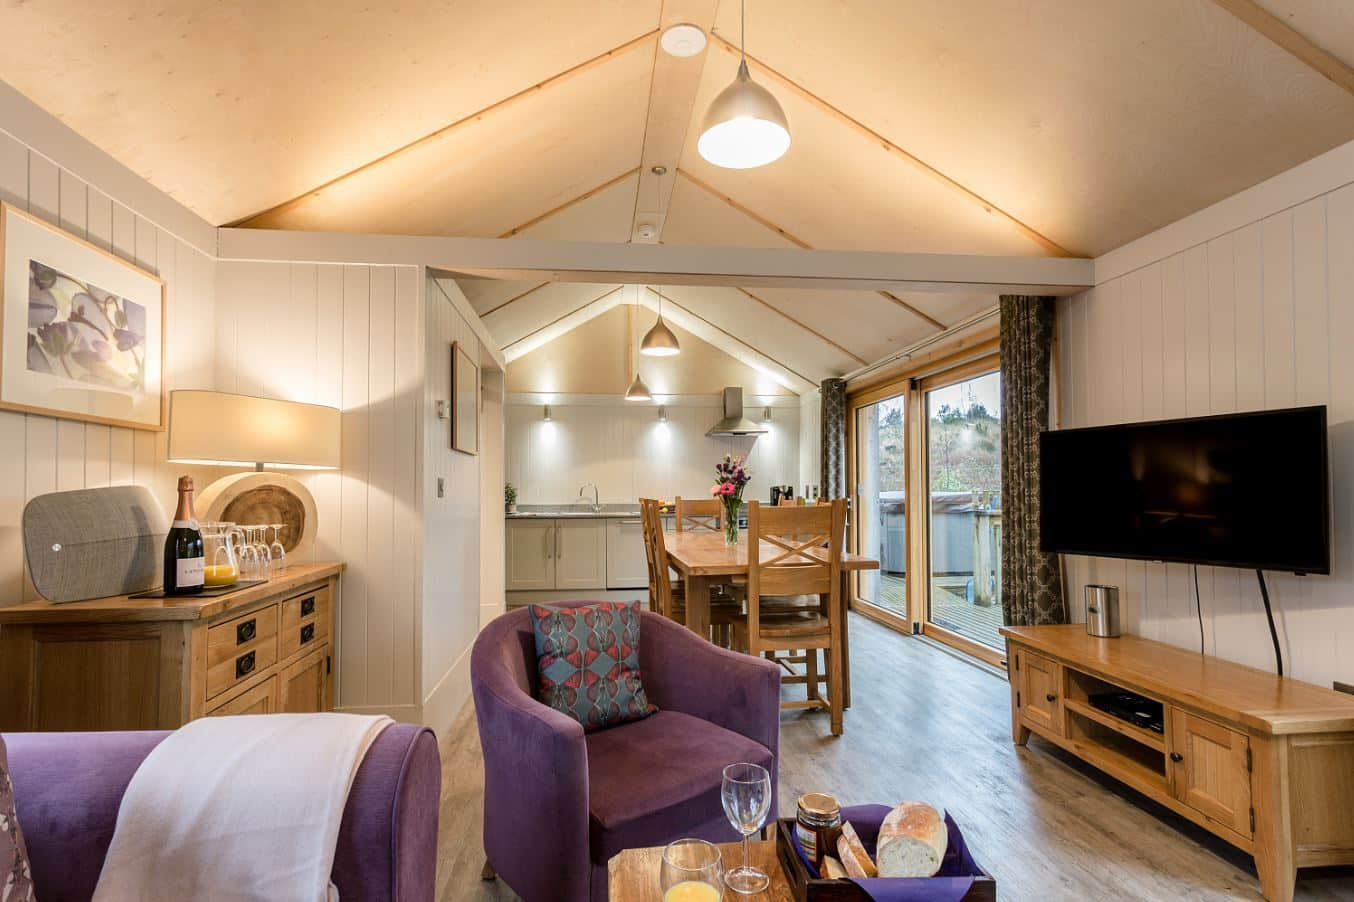 Burnbake Forest Lodges Self Catering Dorset